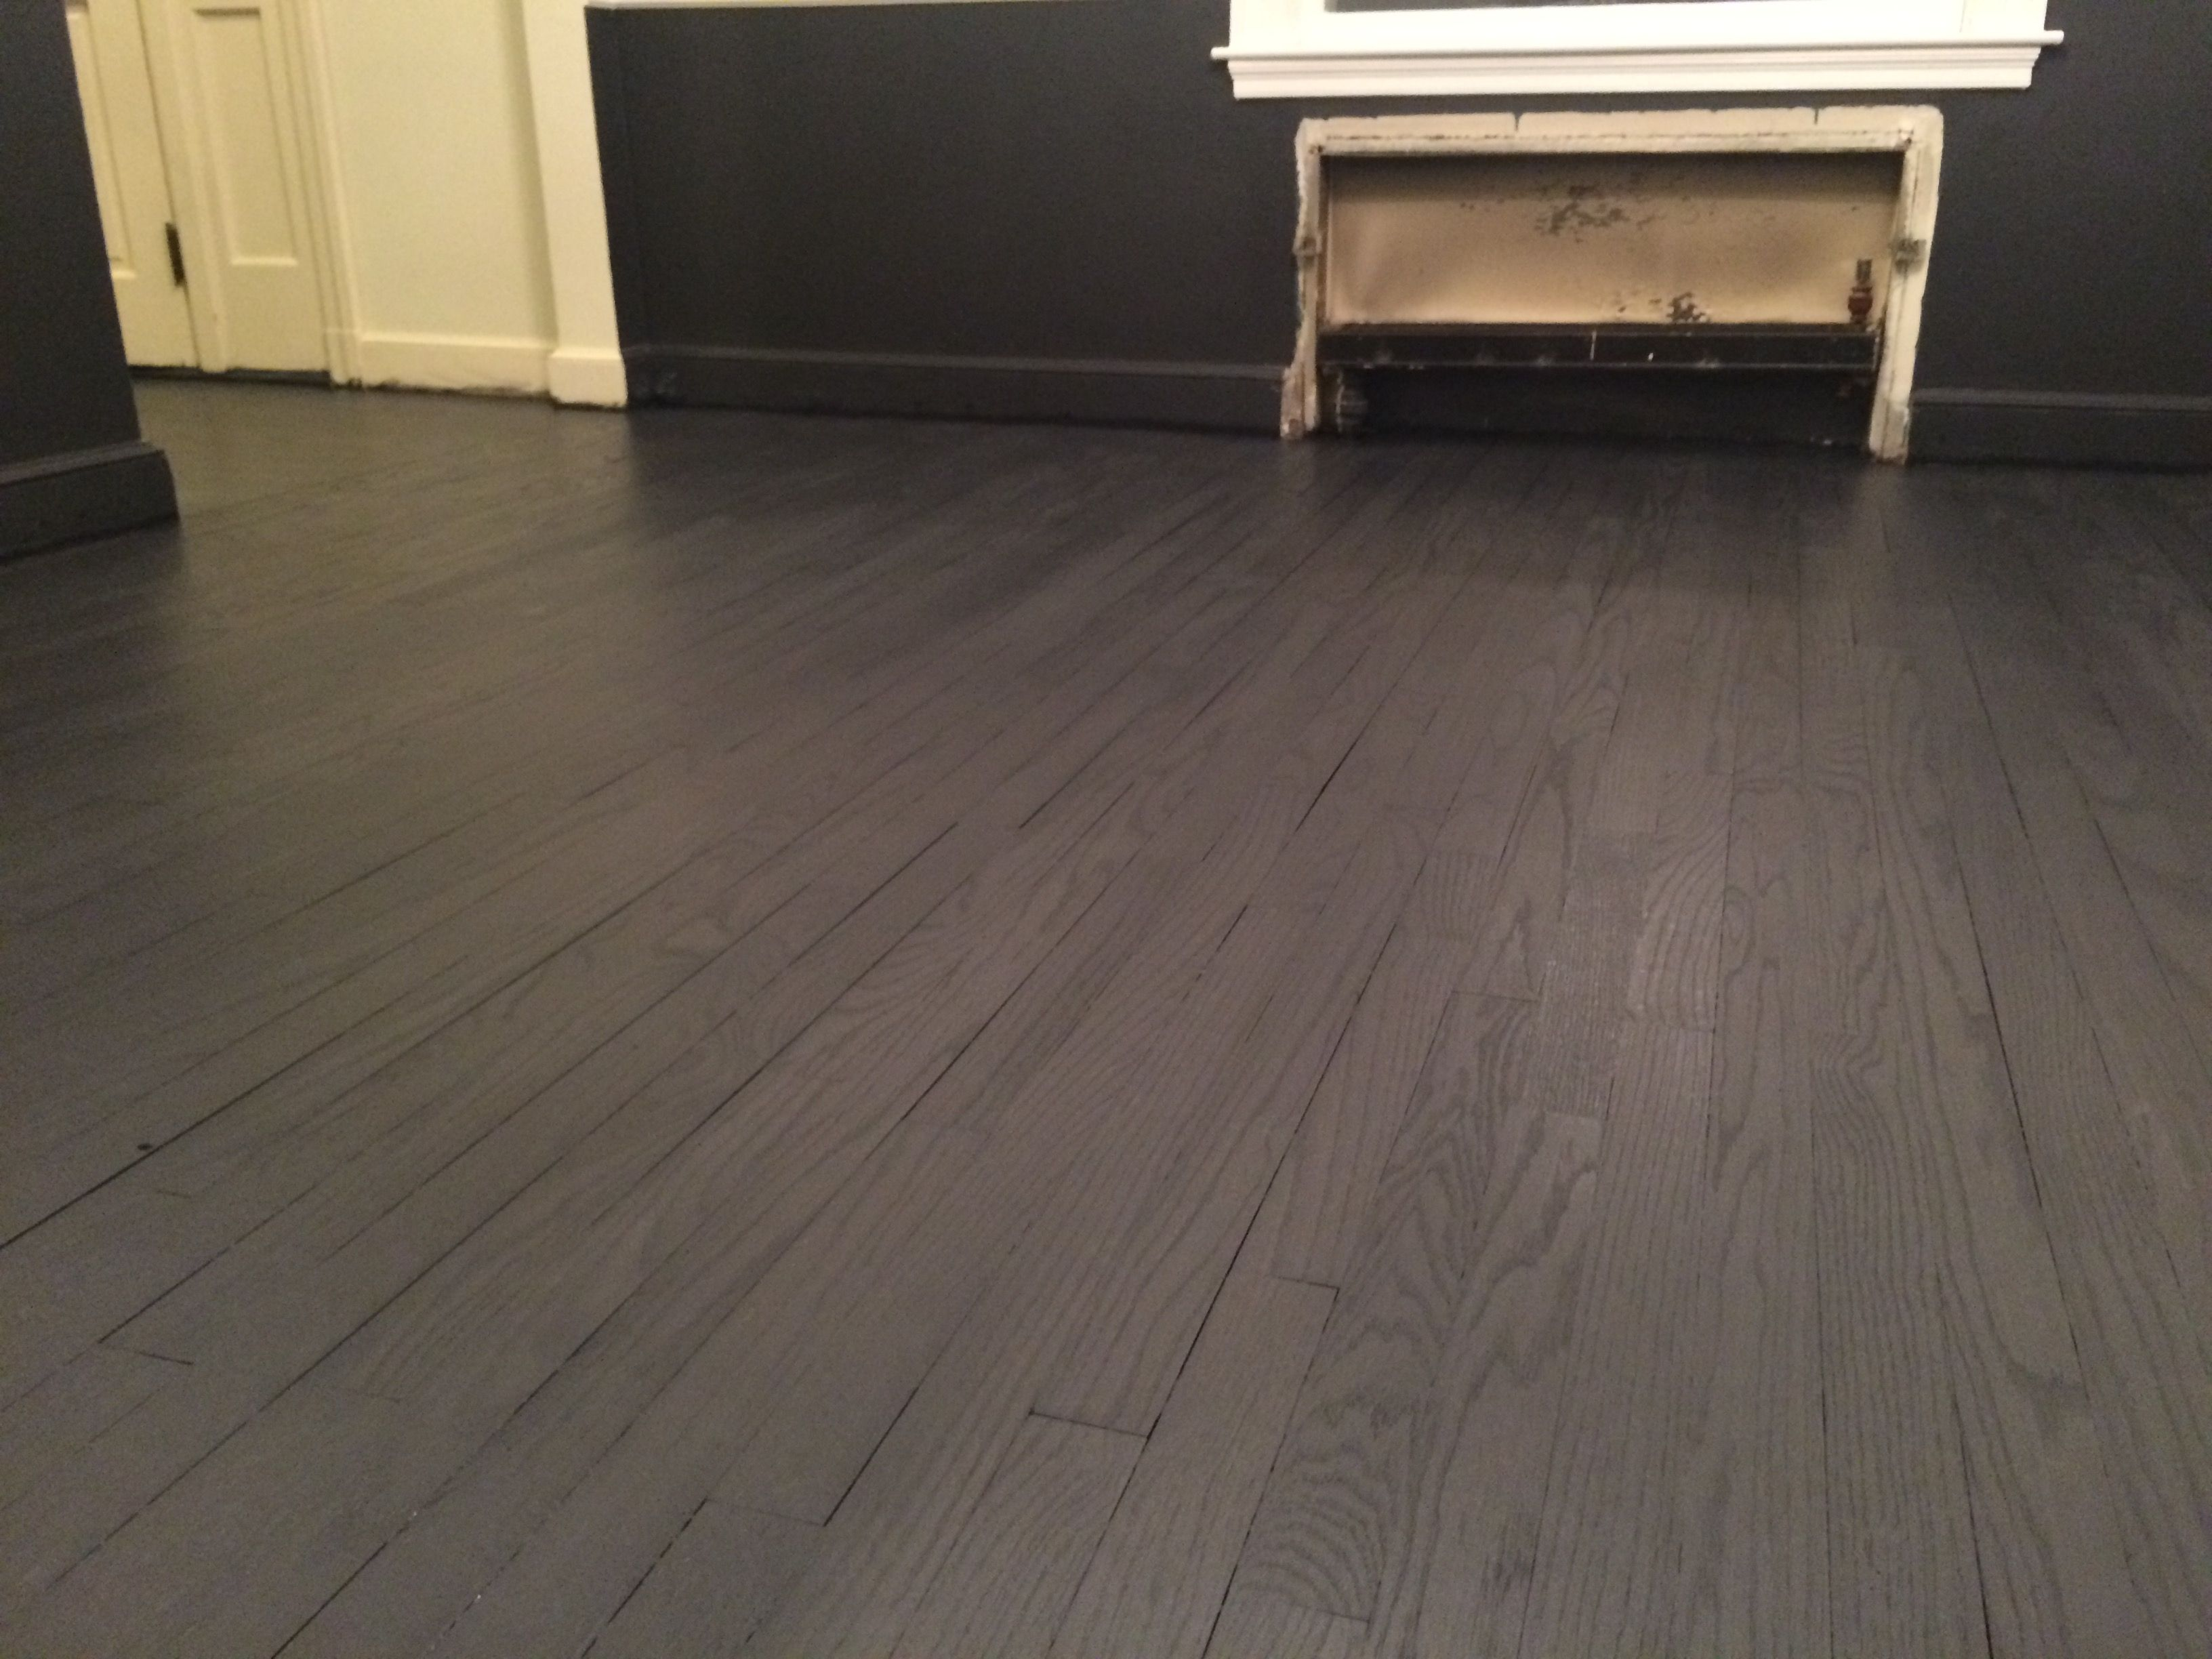 Hardwax Oil Pro Application Hardwood Floors Red Oak Hardwood